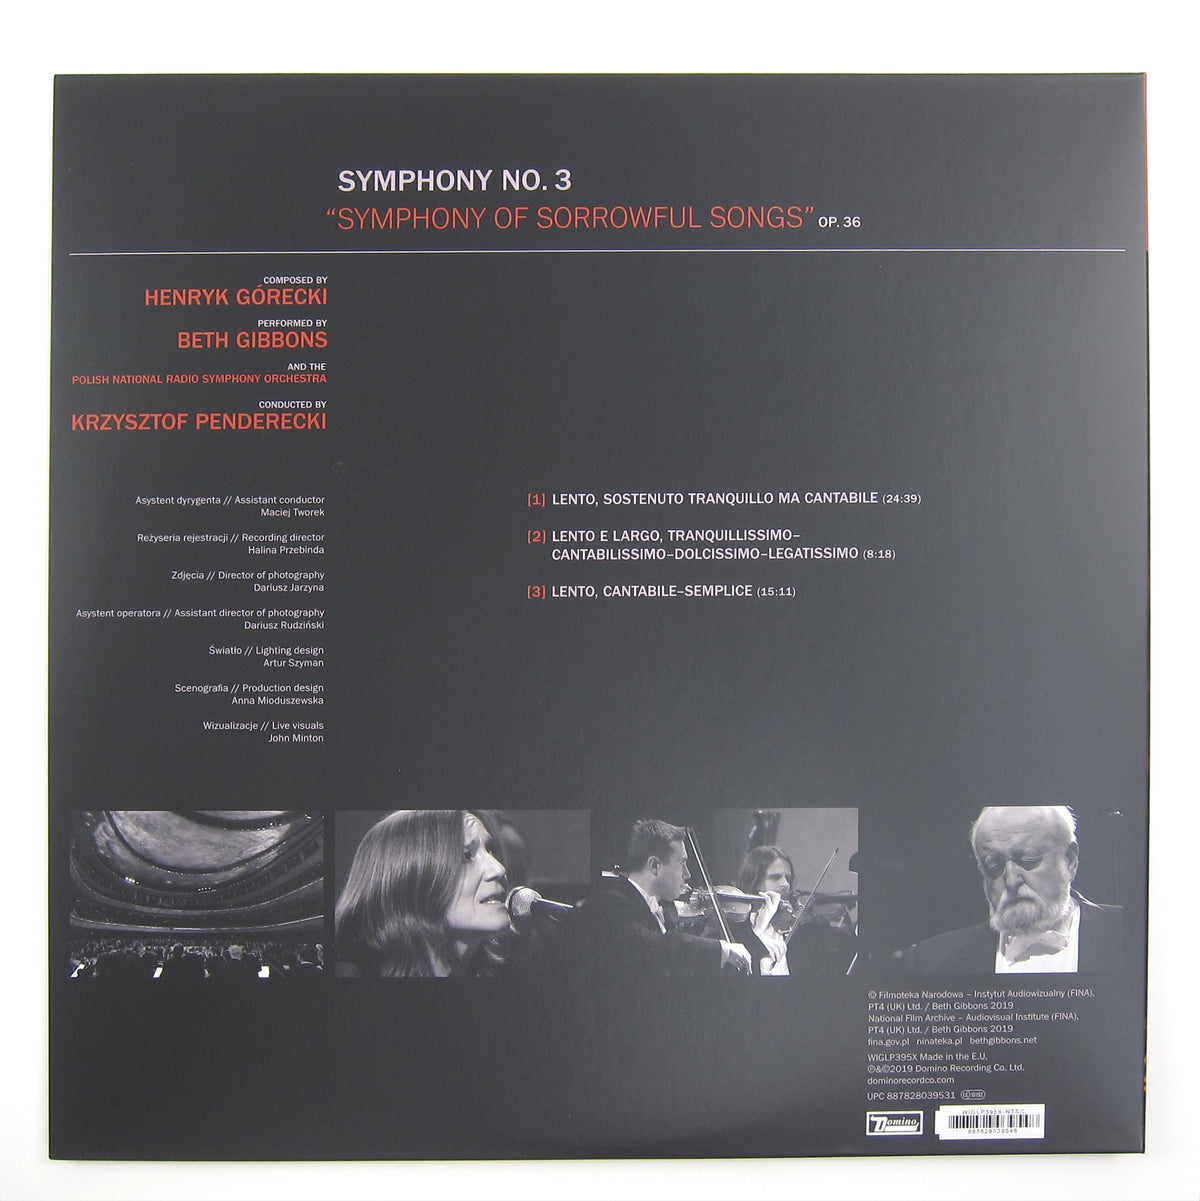 Beth Gibbons: Henryk Górecki - Symphony No.3 (180g Indie Exclusive) Vinyl LP+DVD - Deluxe Edition